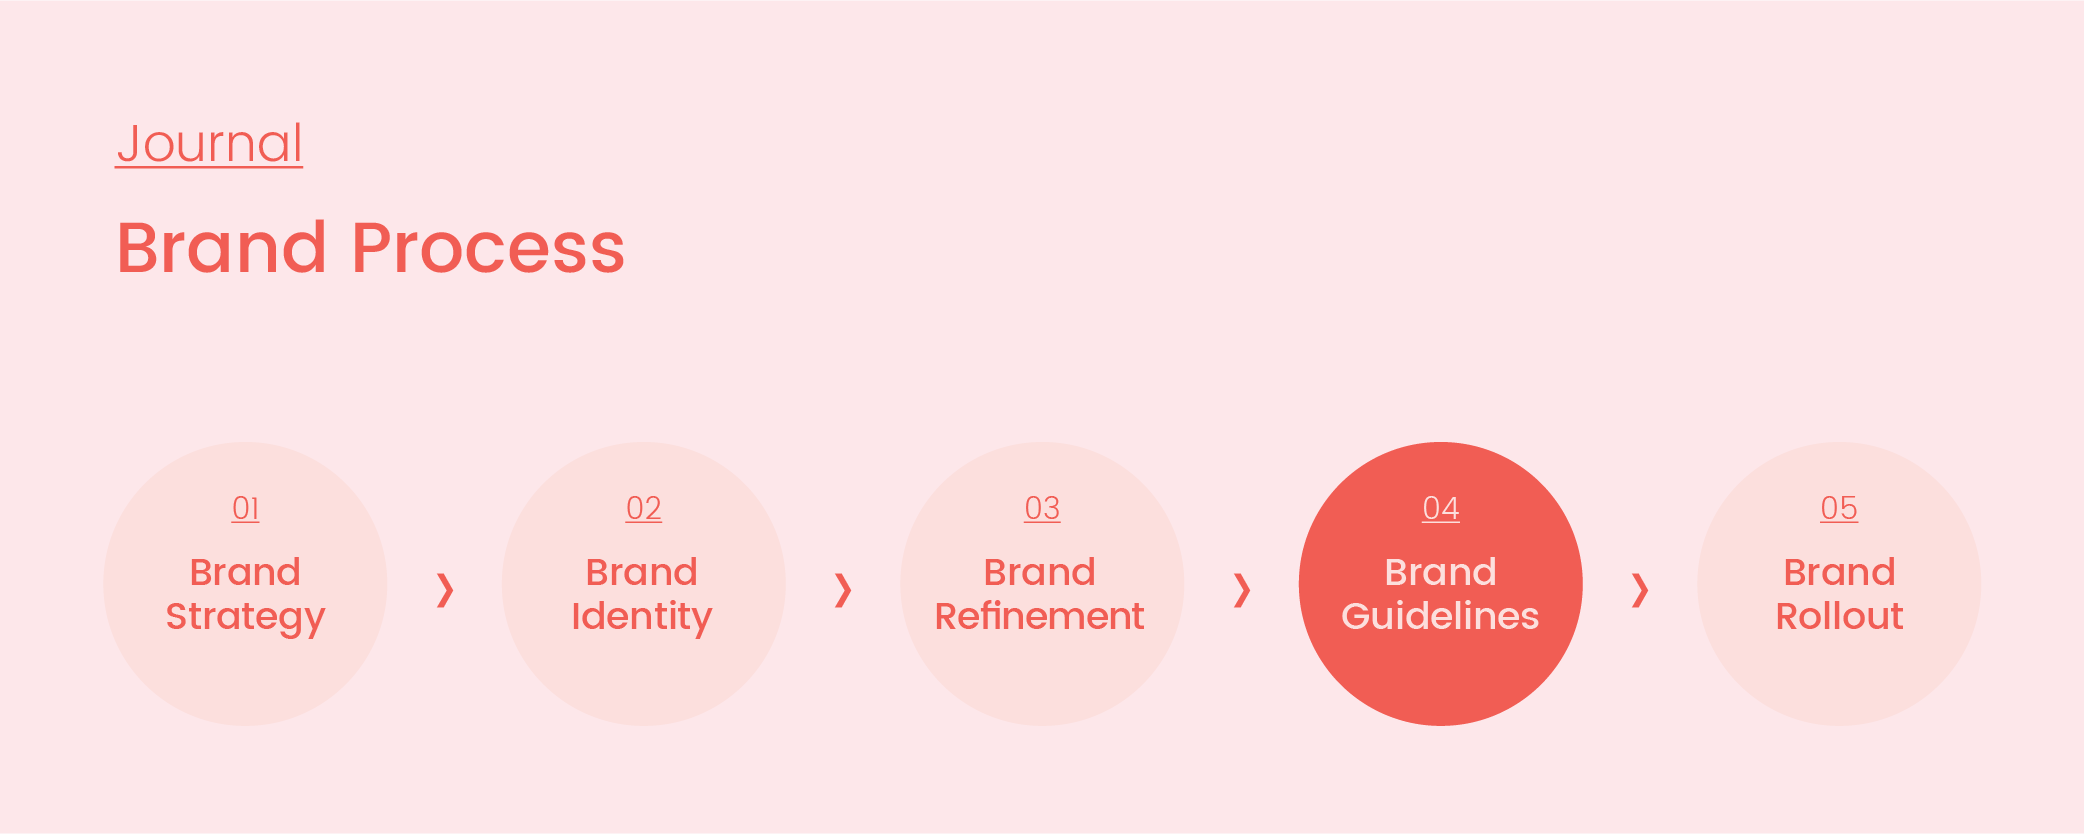 Brand Process_04_Guidelines_Artboard 1 copy 3.png